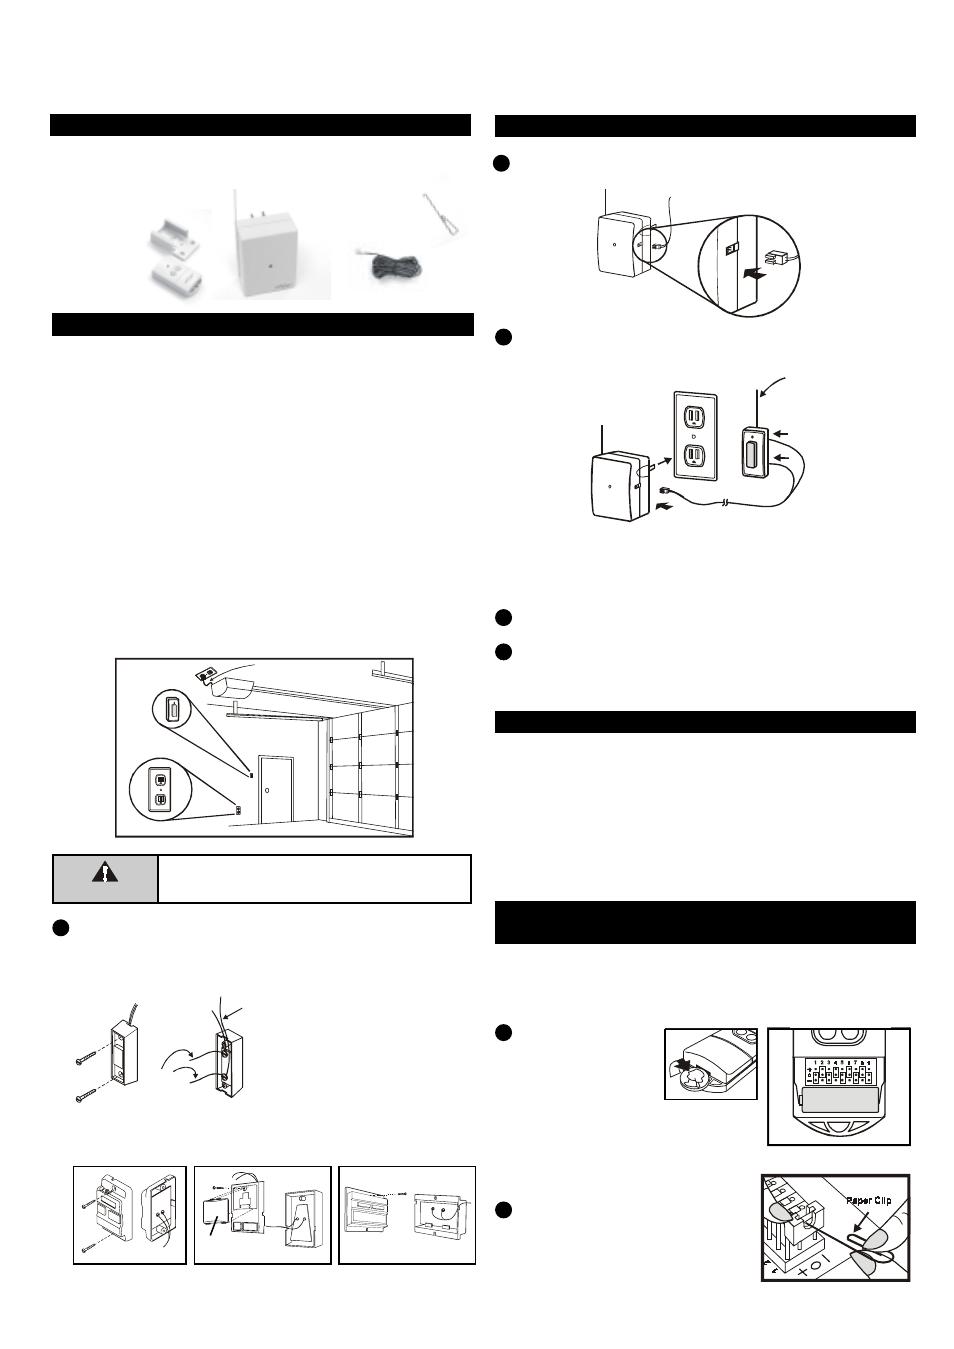 Skylink Houselink 318tr User Manual 2 Pages